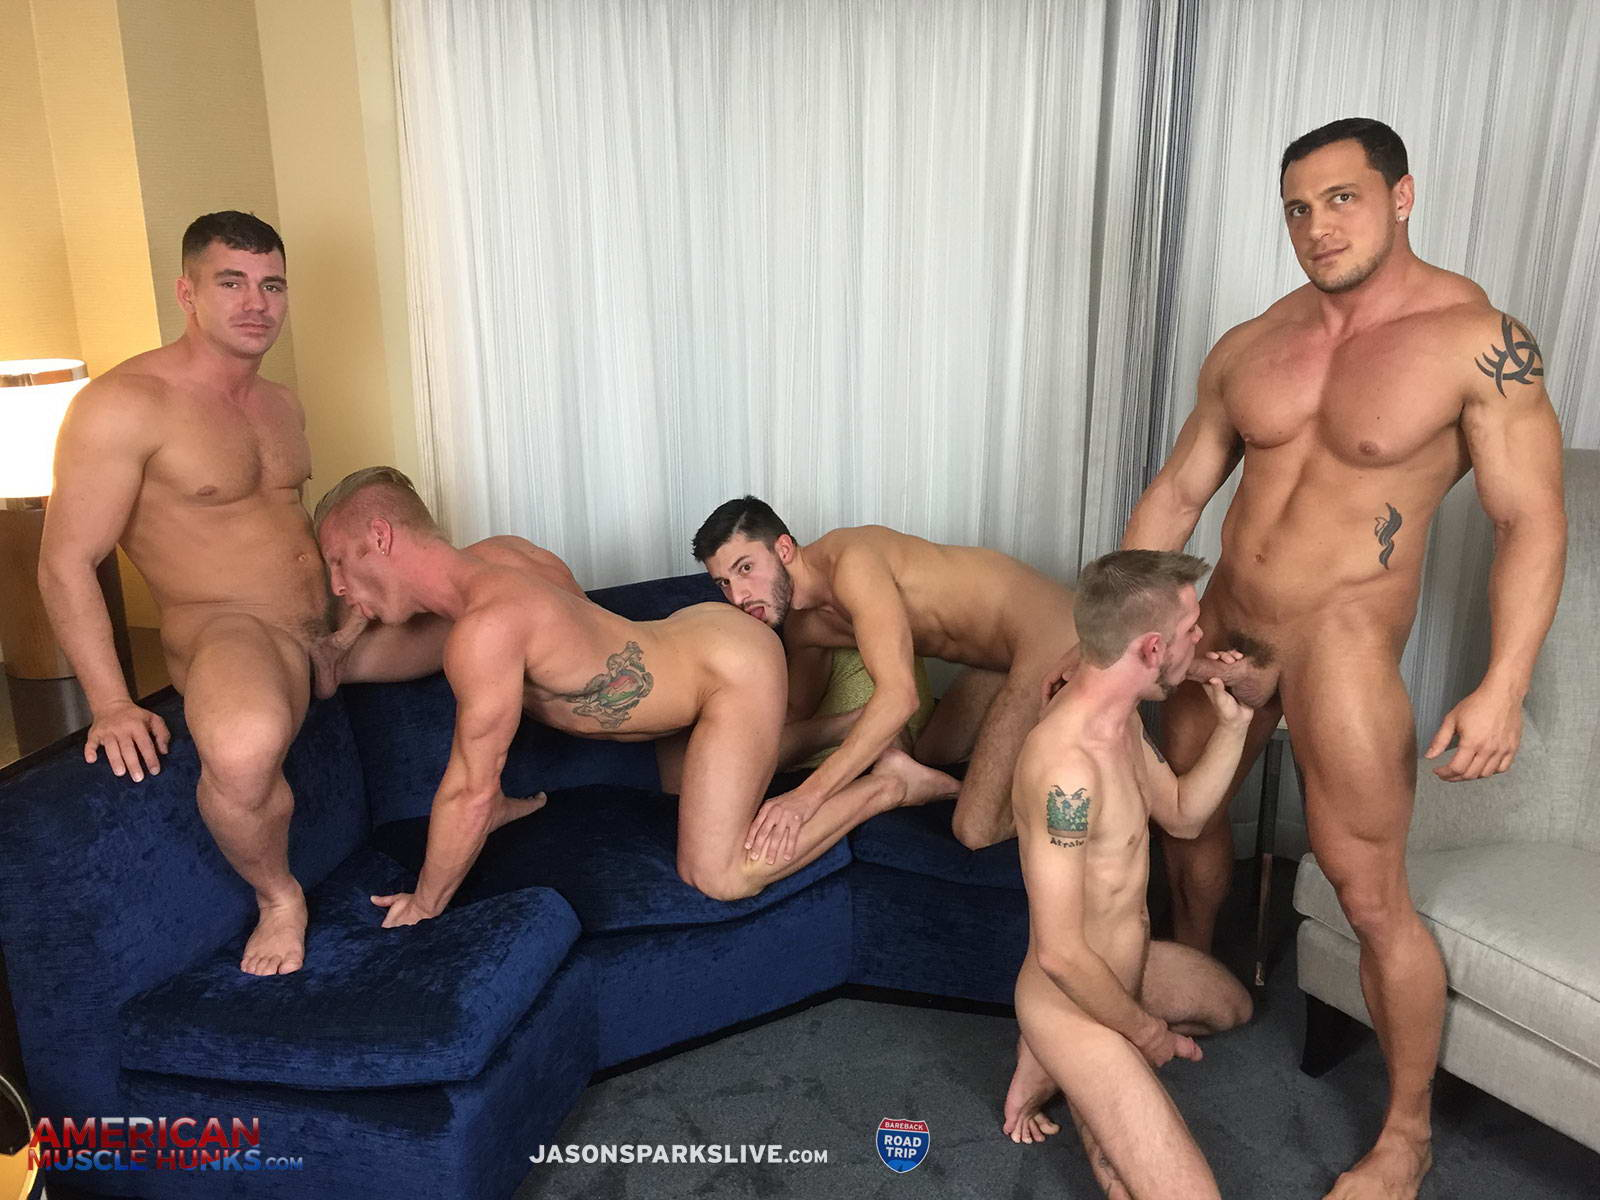 gay gym orgy Sep 2013  This gay orgy starts in a shower where there are so many men that it looks like  the shower is gonna break down.